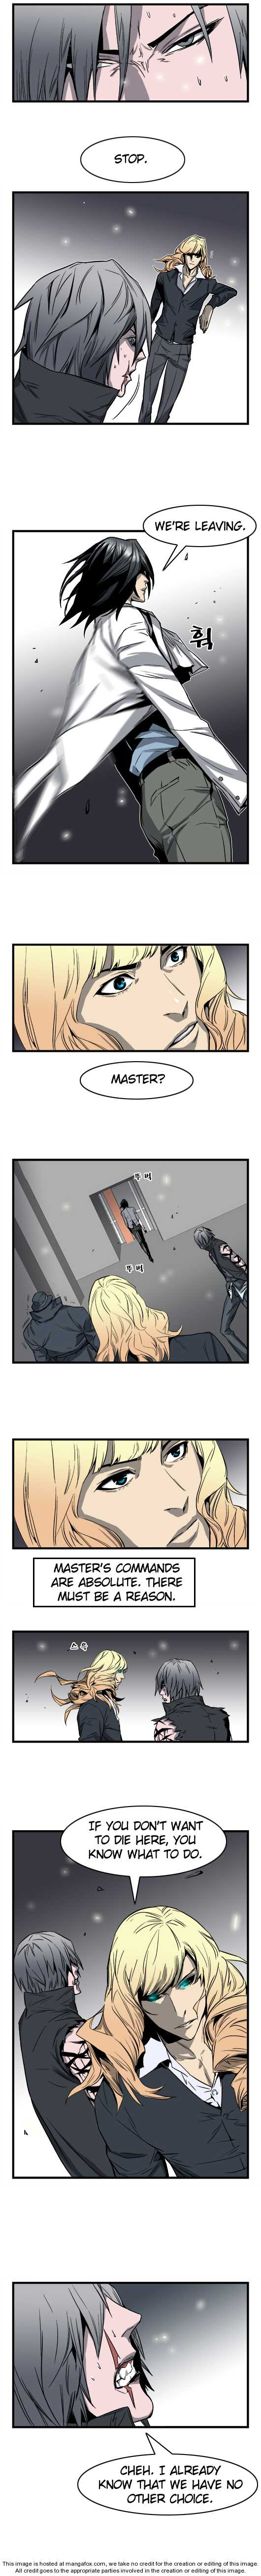 Noblesse 33 Page 2